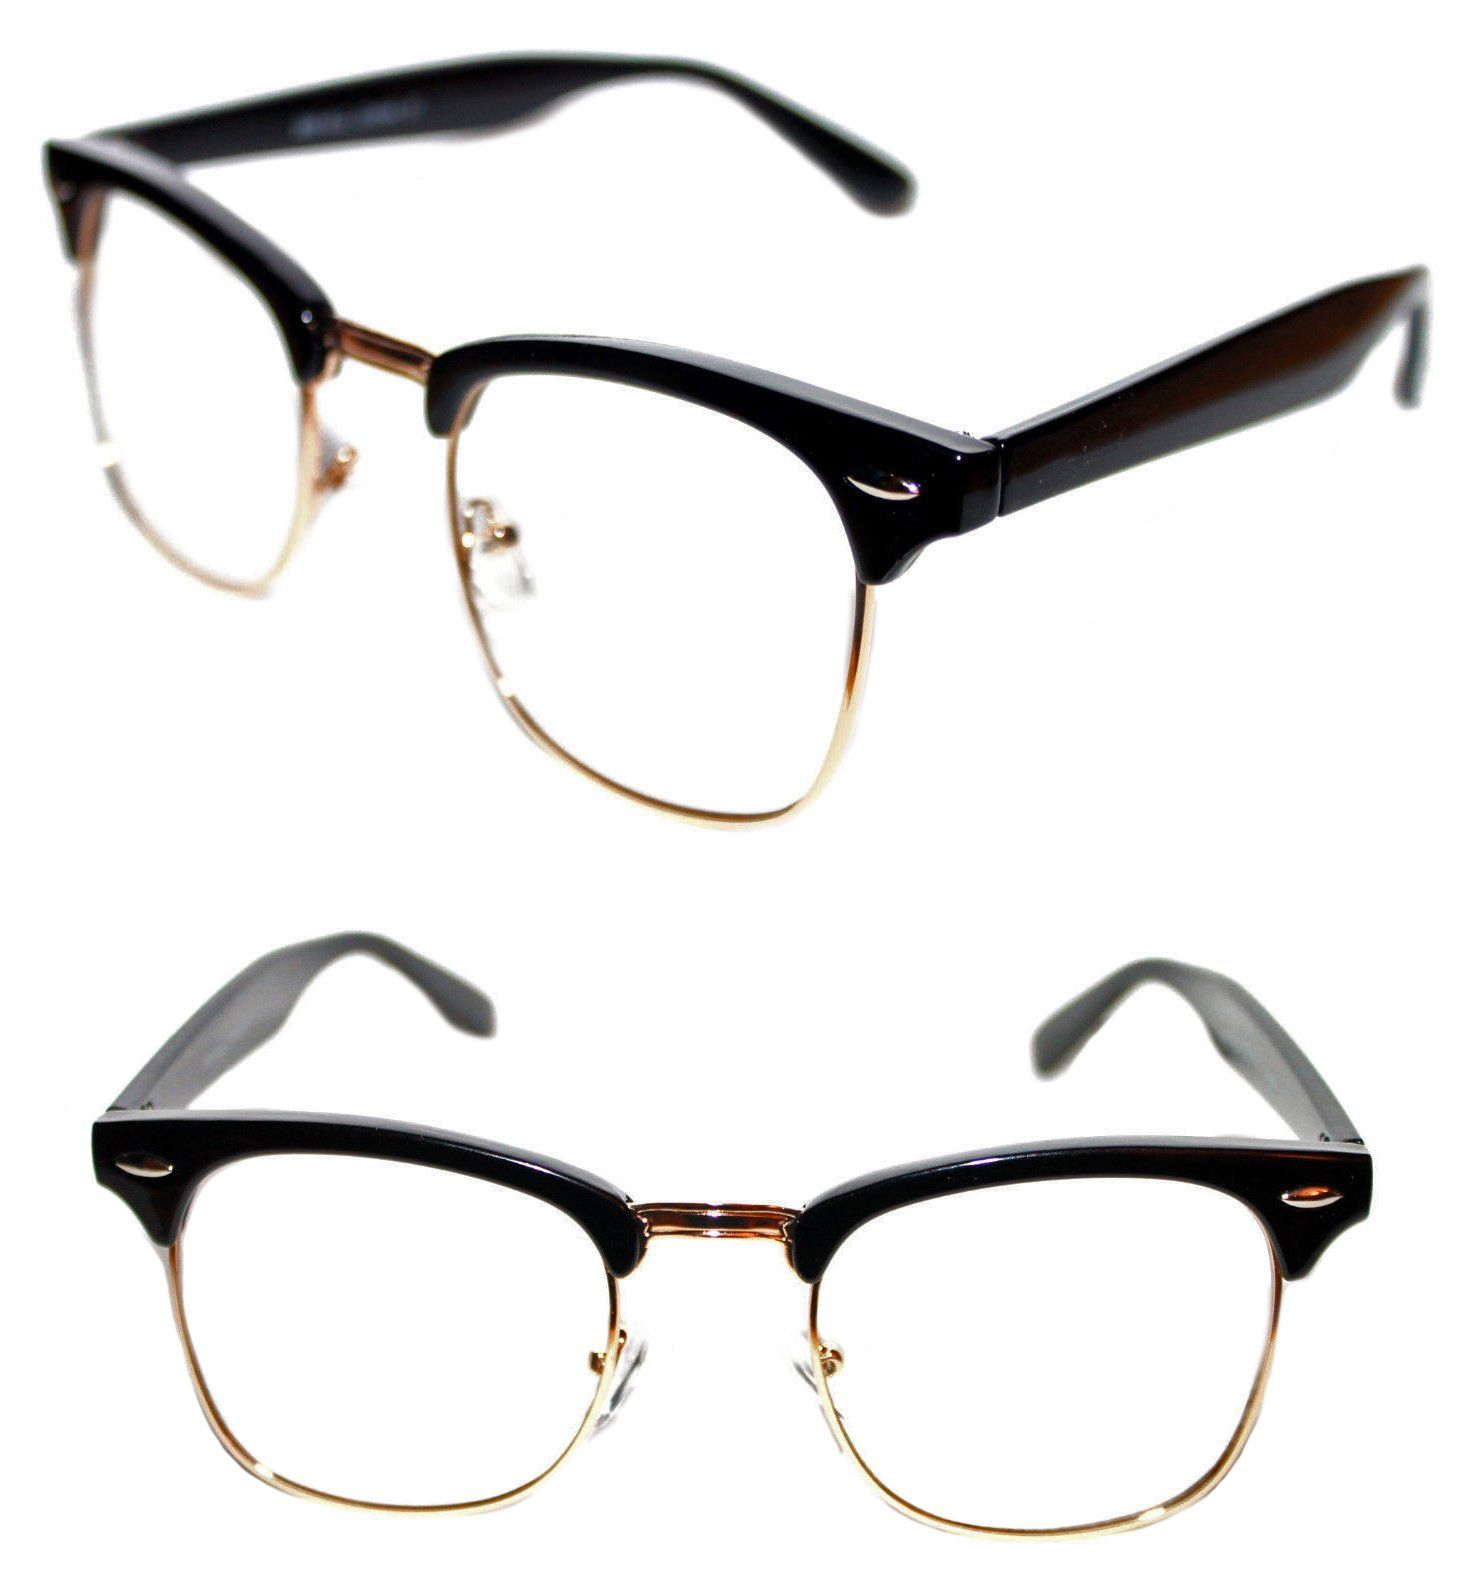 148317c570e9 Men's Women's Black Gold Frame Half Shell Clubmaster Clear Lens Glasses Soho